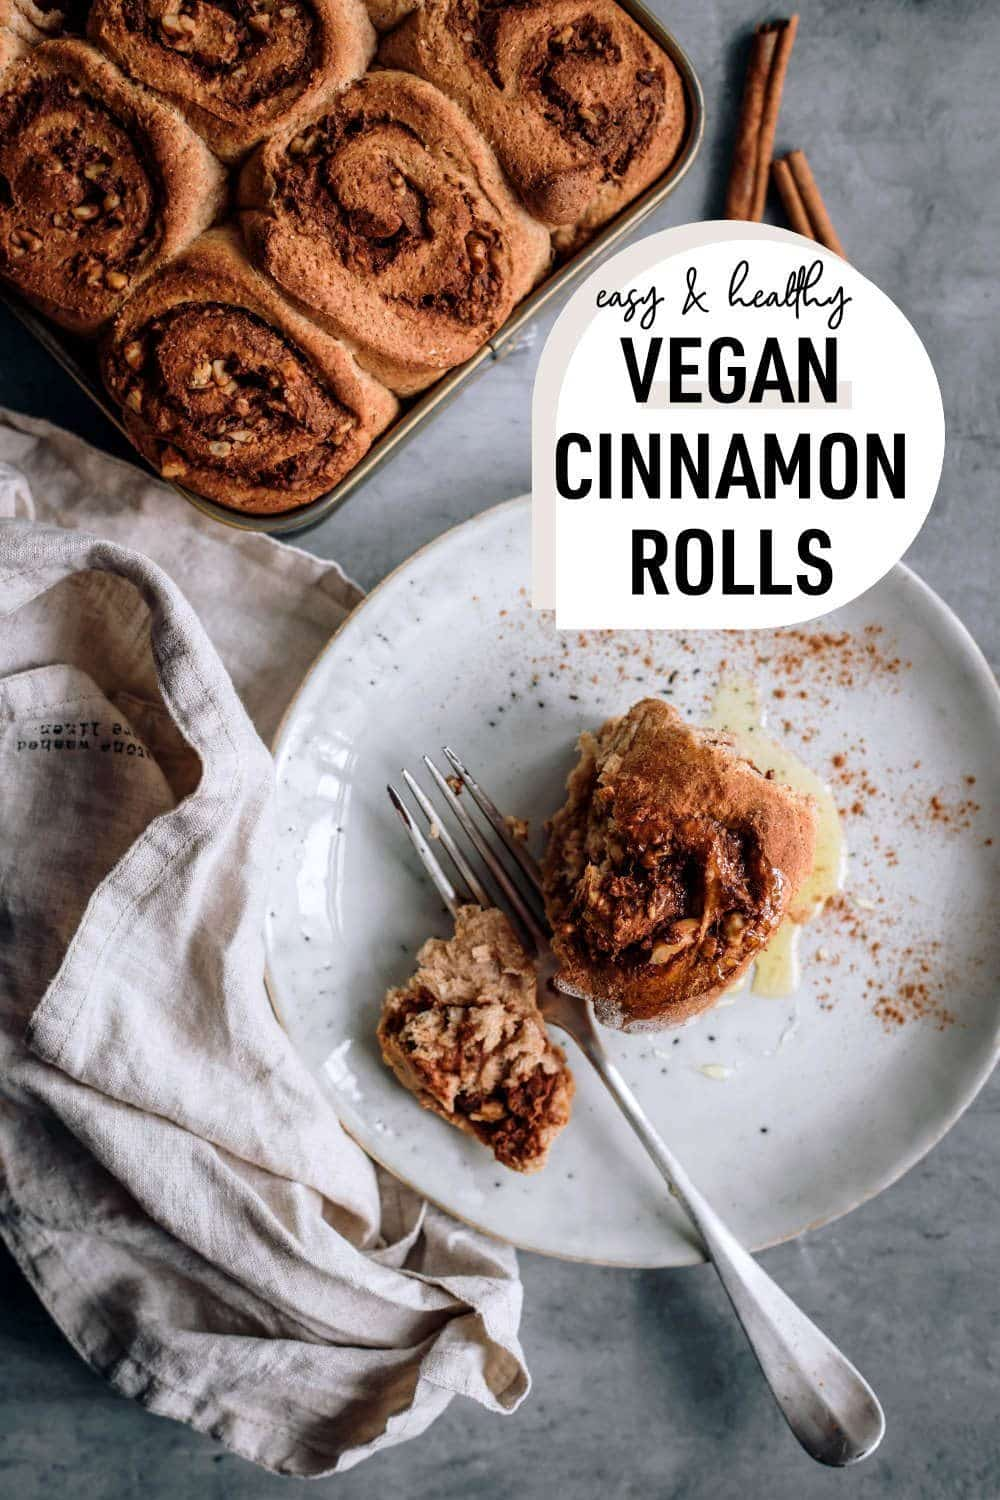 picture of vegan cinnamon rolls from the top with a drop shape saying vegan cinnamon rolls